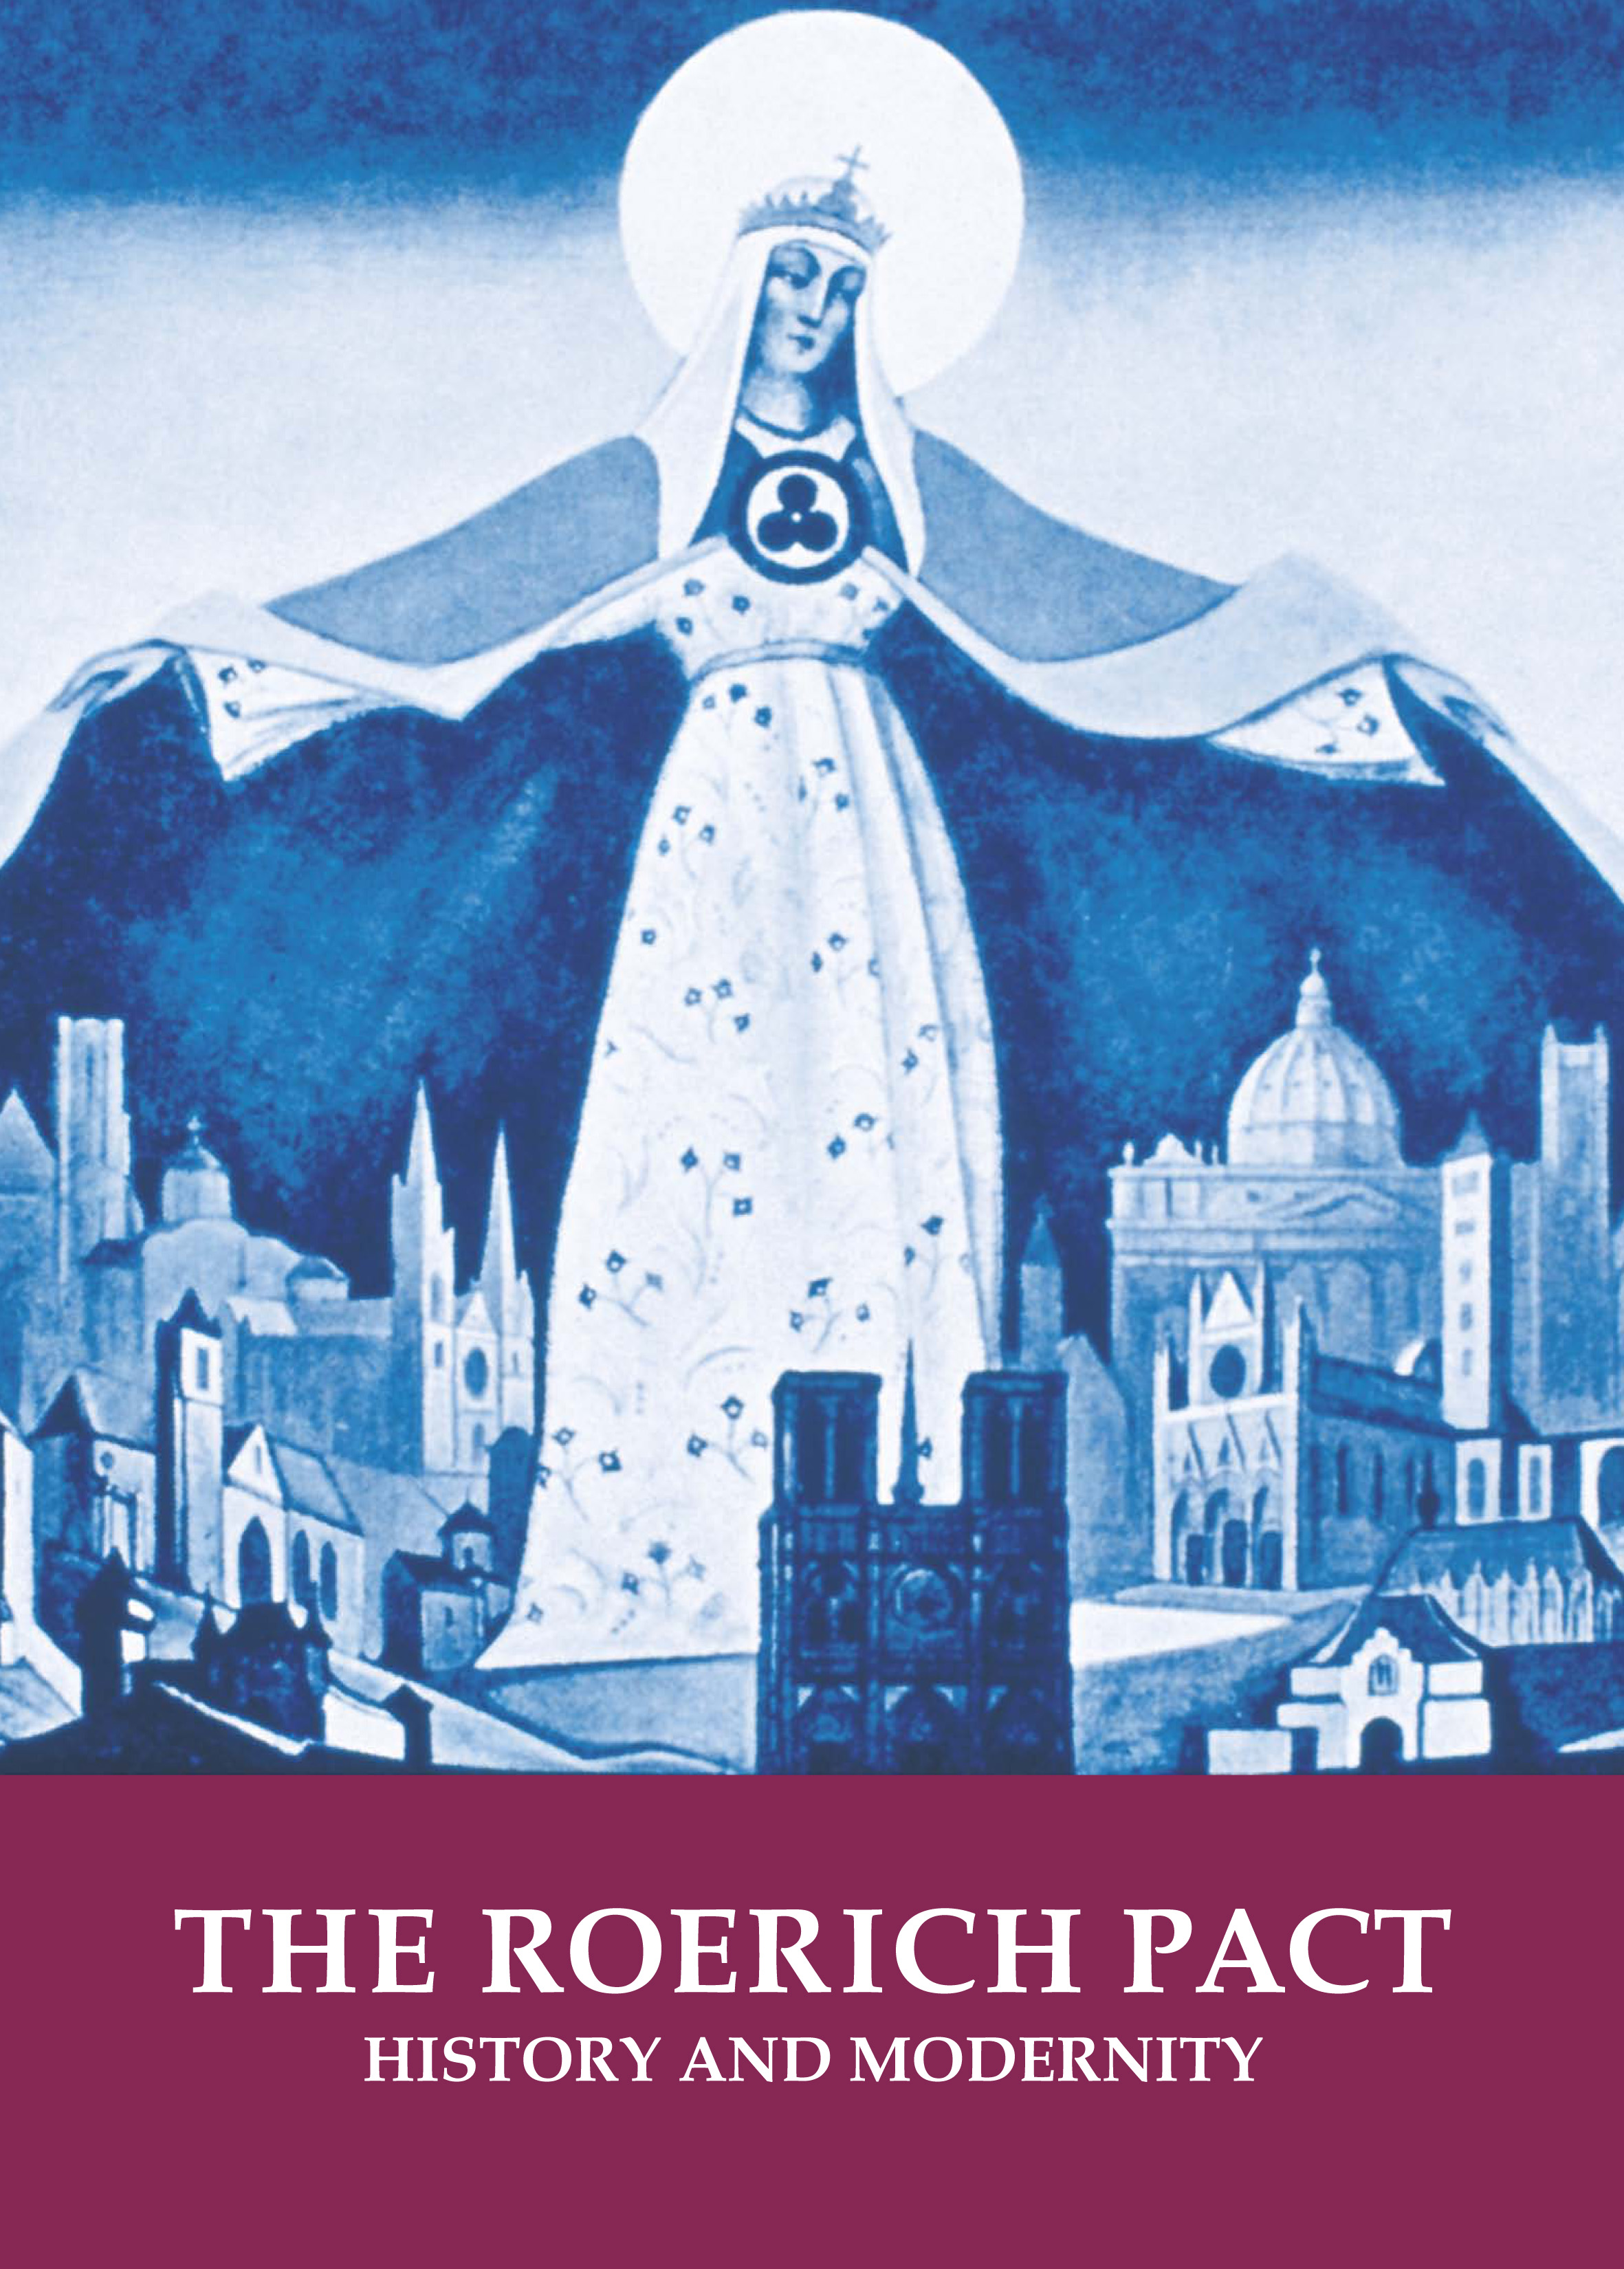 Коллектив авторов The Roerich Pact. History and modernity. On the Occasion of the 80th Anniversary of the Roerich Pact and 70th Anniversary of the United Nations. Exhibition catalogue